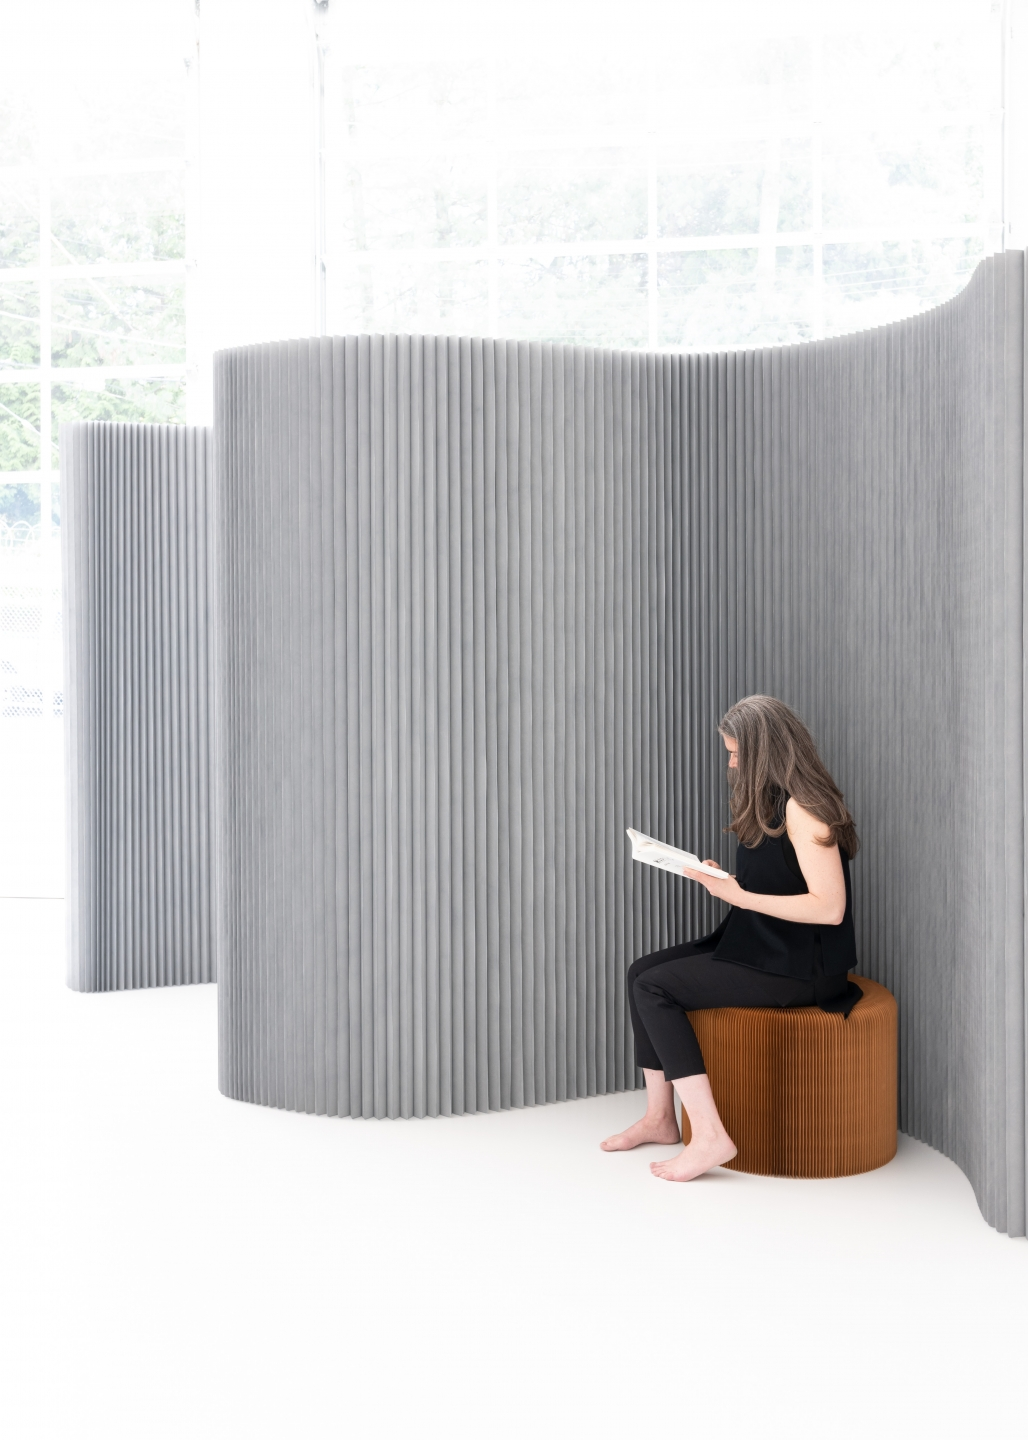 A textile softwall arranged to form a private reading nook.